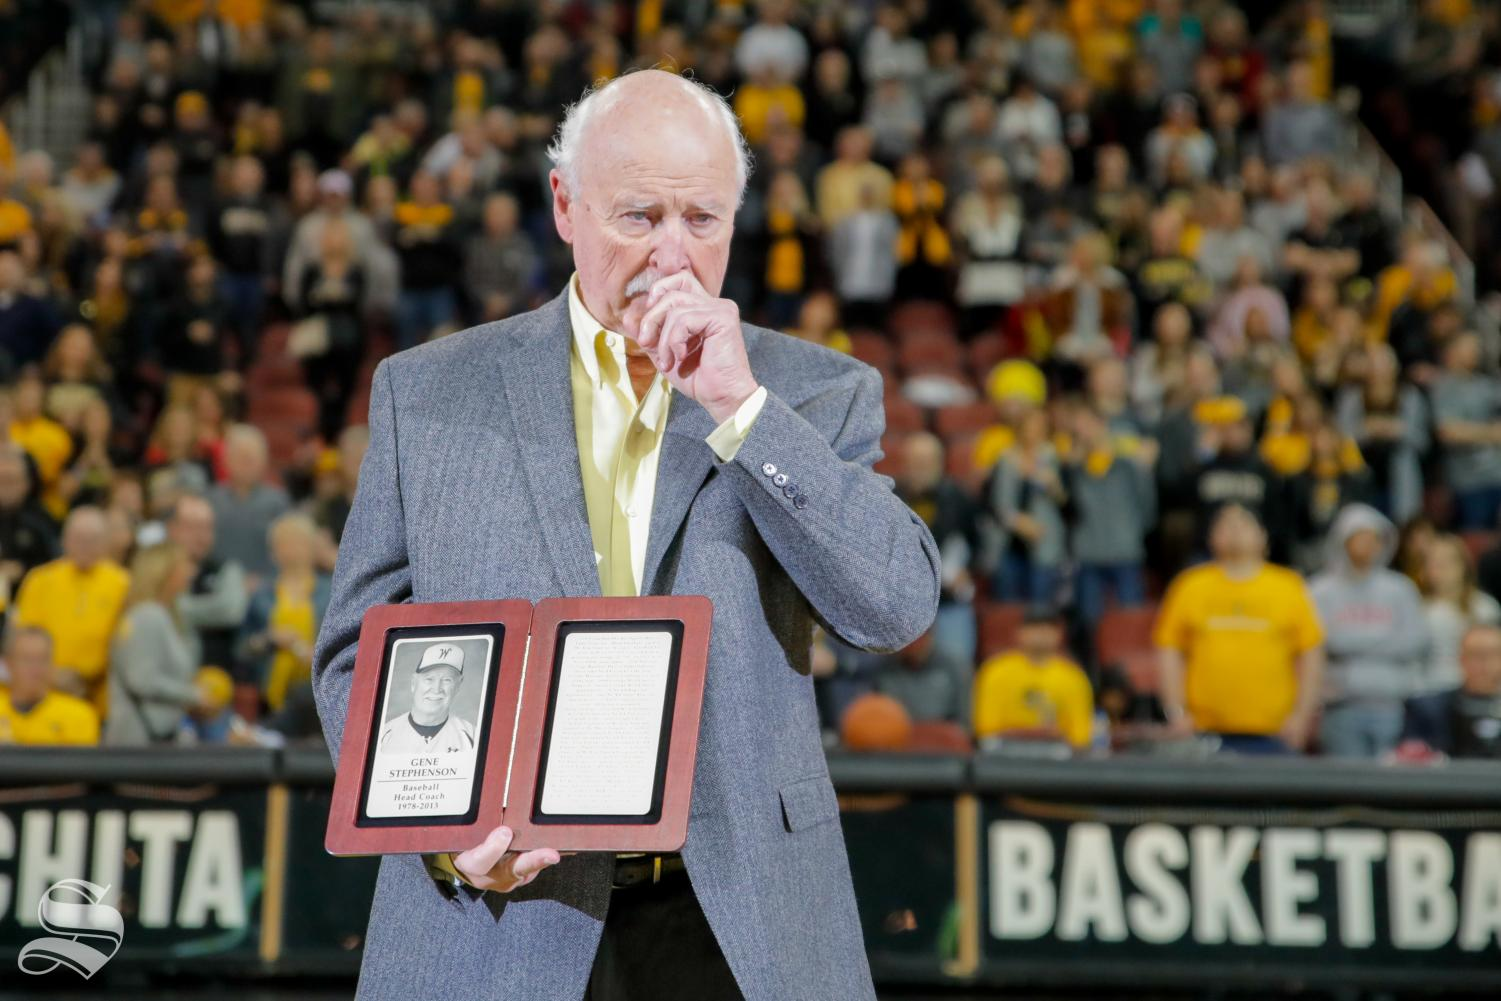 Ex-Wichita State baseball coach Gene Stephenson holds back tears. Wichita State inducted Stephenson into the Hall of Fame on Saturday. Stephenson led Wichita State to seven College World Series appearances, and in 1989, WSU won the College World Series.